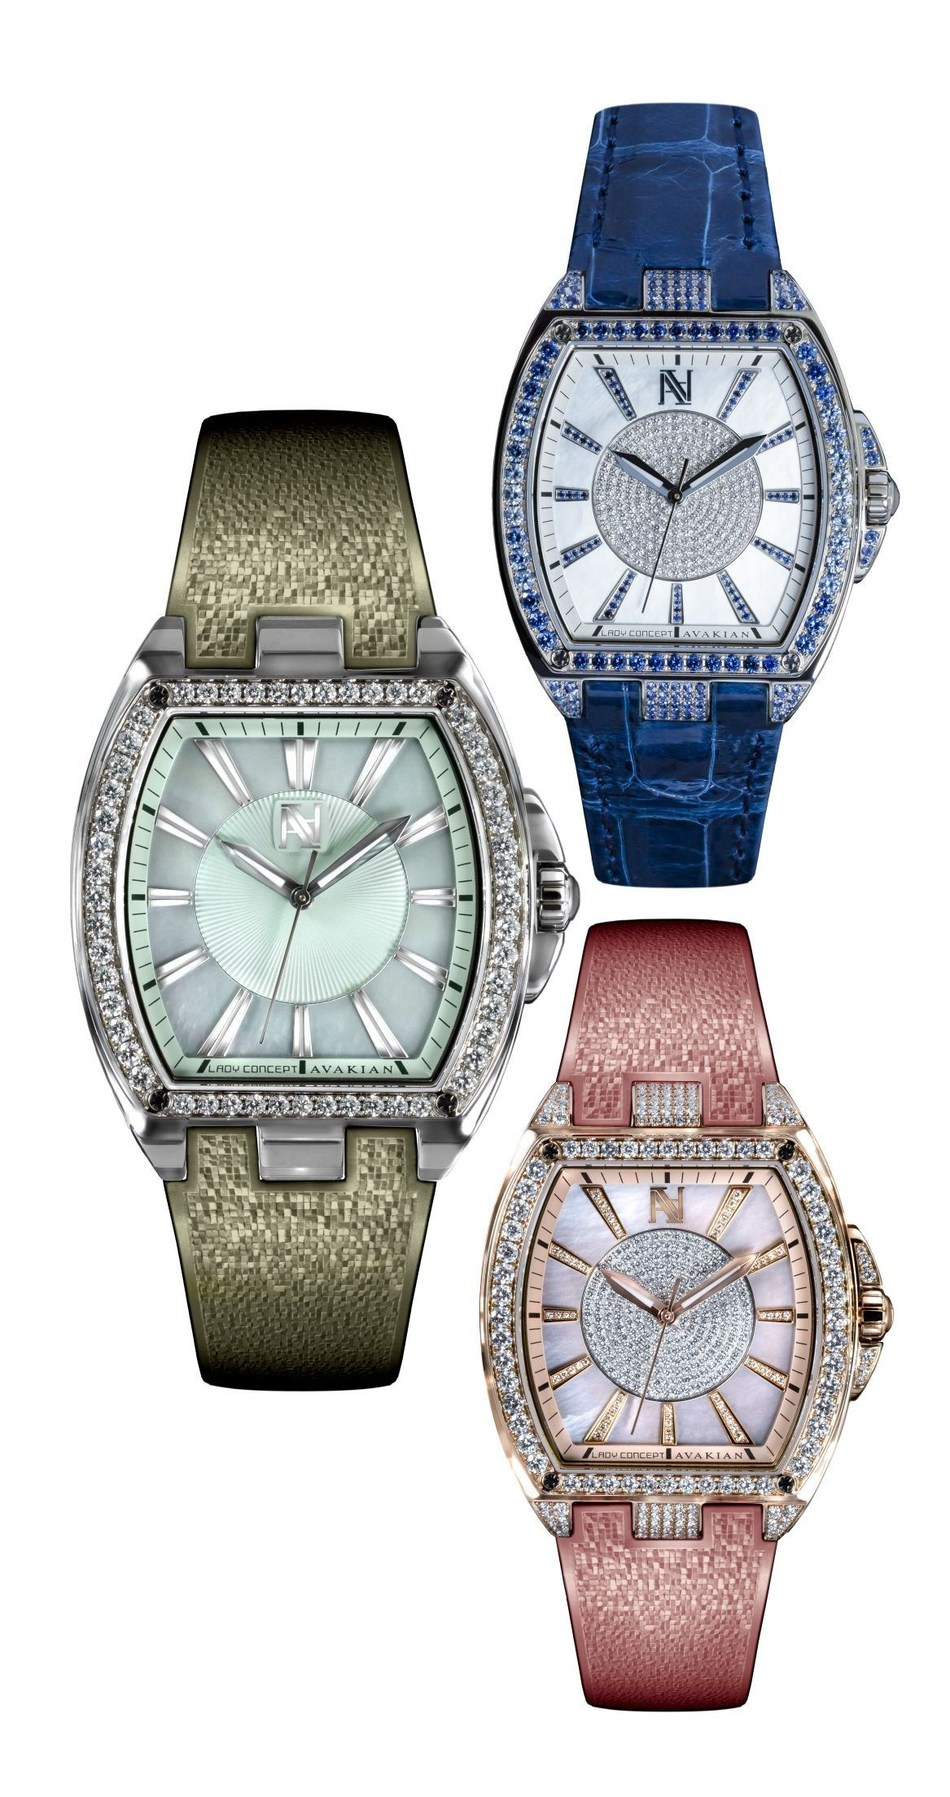 Avakian's new Lady Concept is a bejewelled interpretation of the Tonneau silhouette. Created in tribute to the free-spirited dynamic woman, the daring new timepiece features elegant alligator leather or pearly mosaic rubber strap (available in eight colourways). (PRNewsfoto/Avakian)